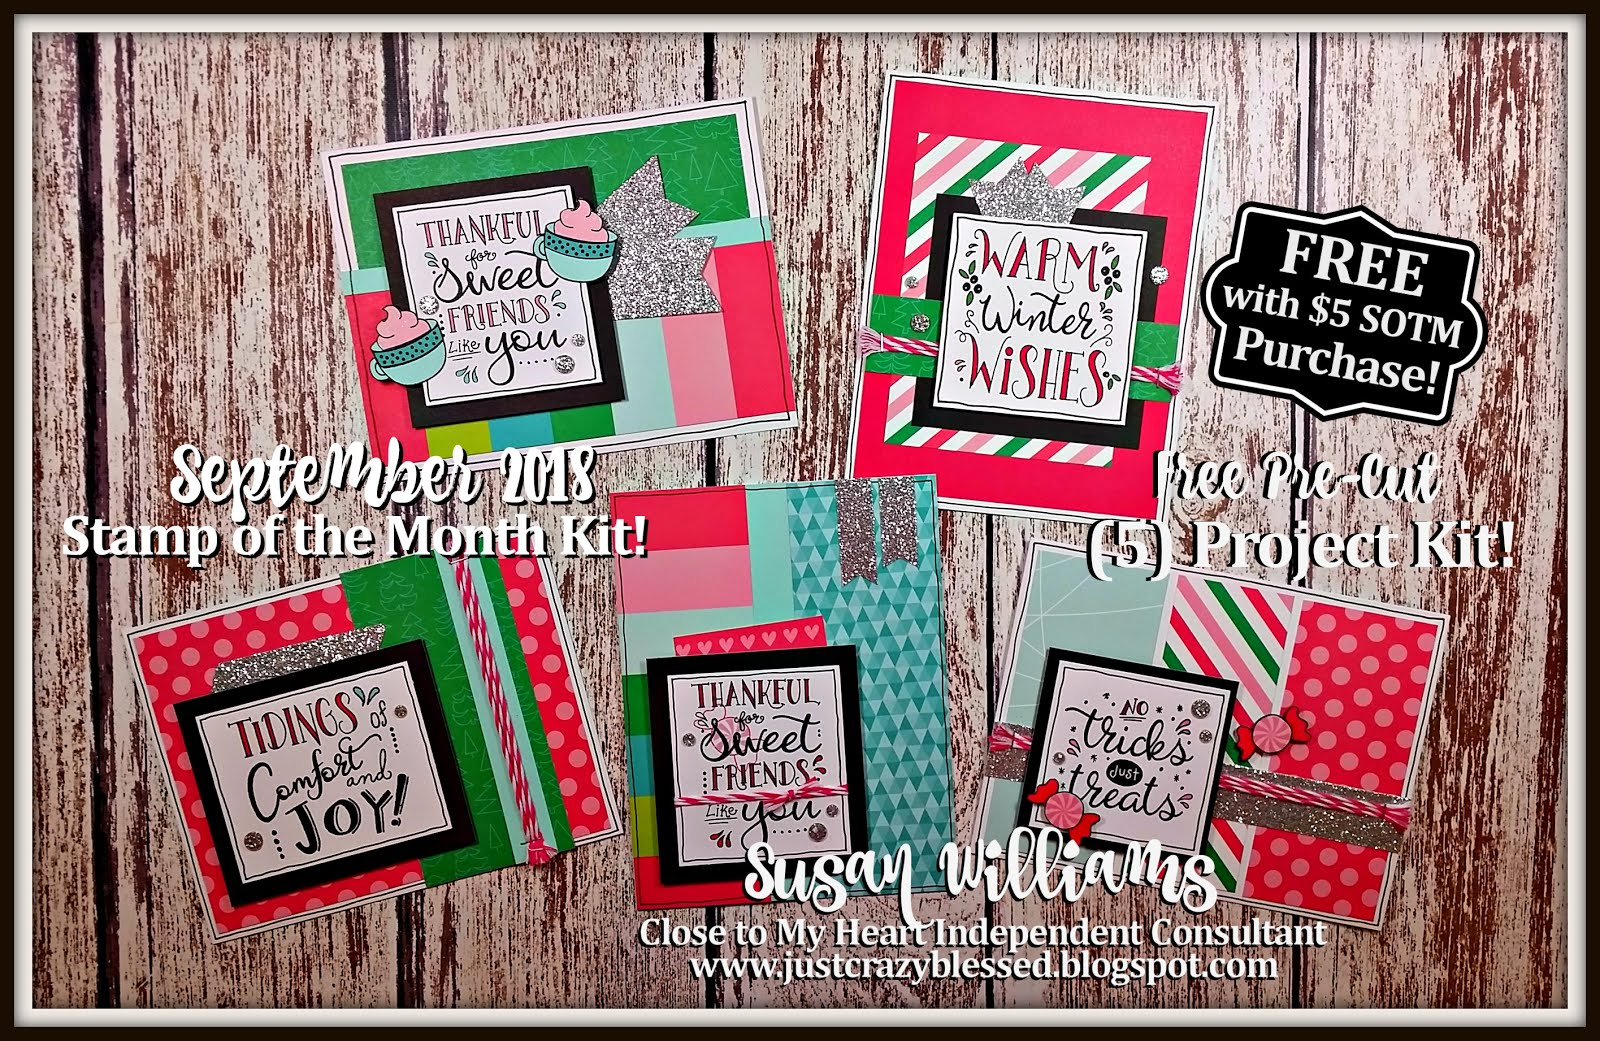 September 2018 Stamp of the Month Workshop!